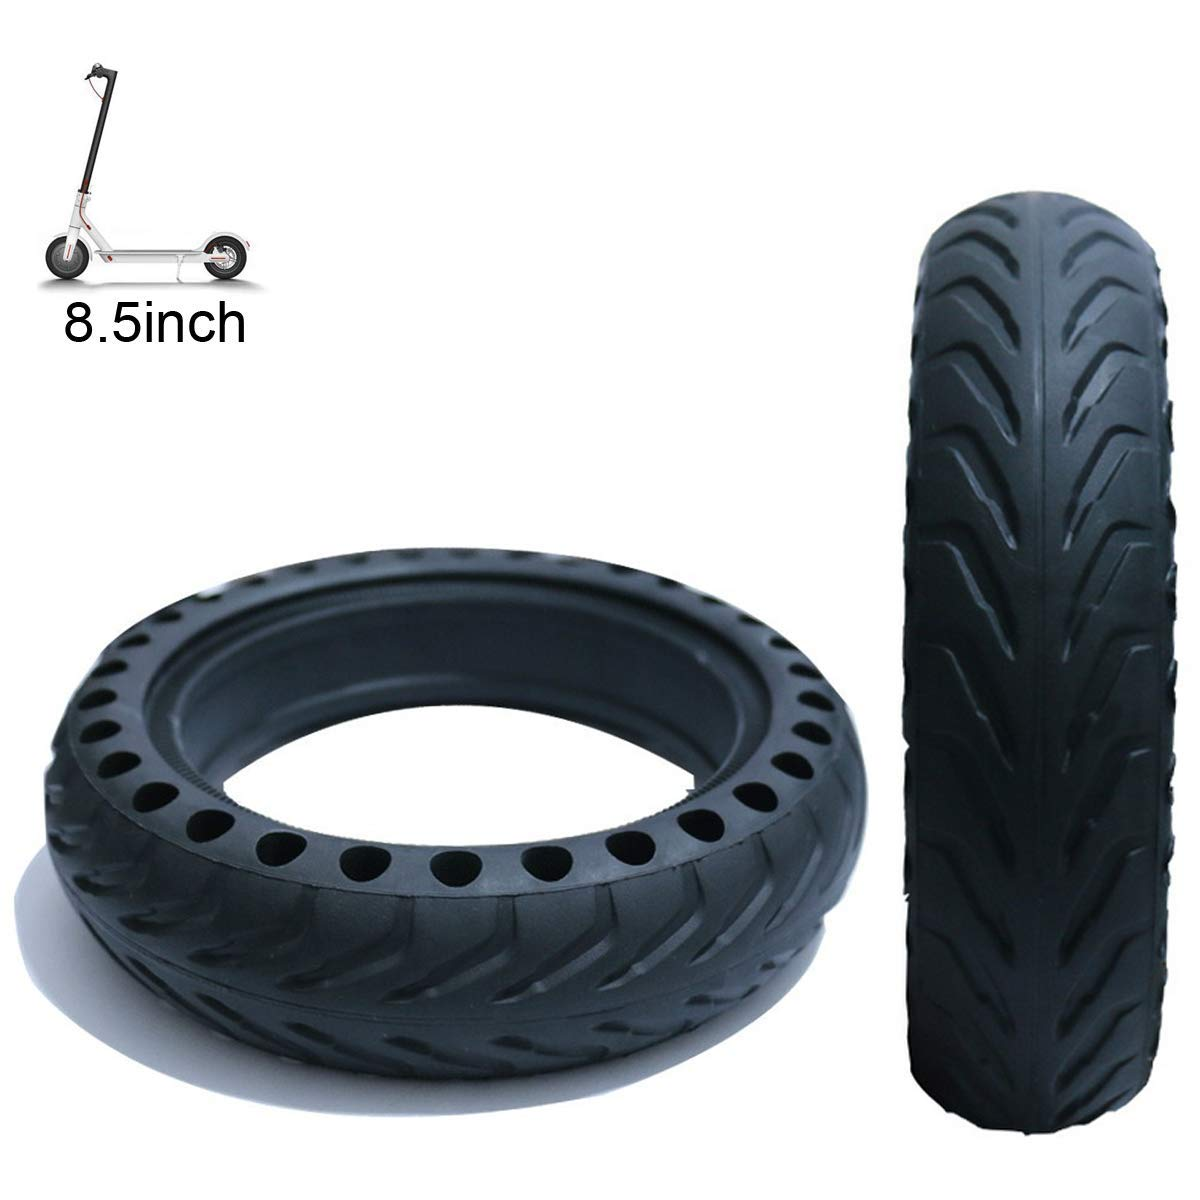 Flycoo 8.5inch Solid tyre for Xiaomi M365 Electric Scooter 8 1//2x2 Solid Non-Slip Replacement Front//Rear Tyres